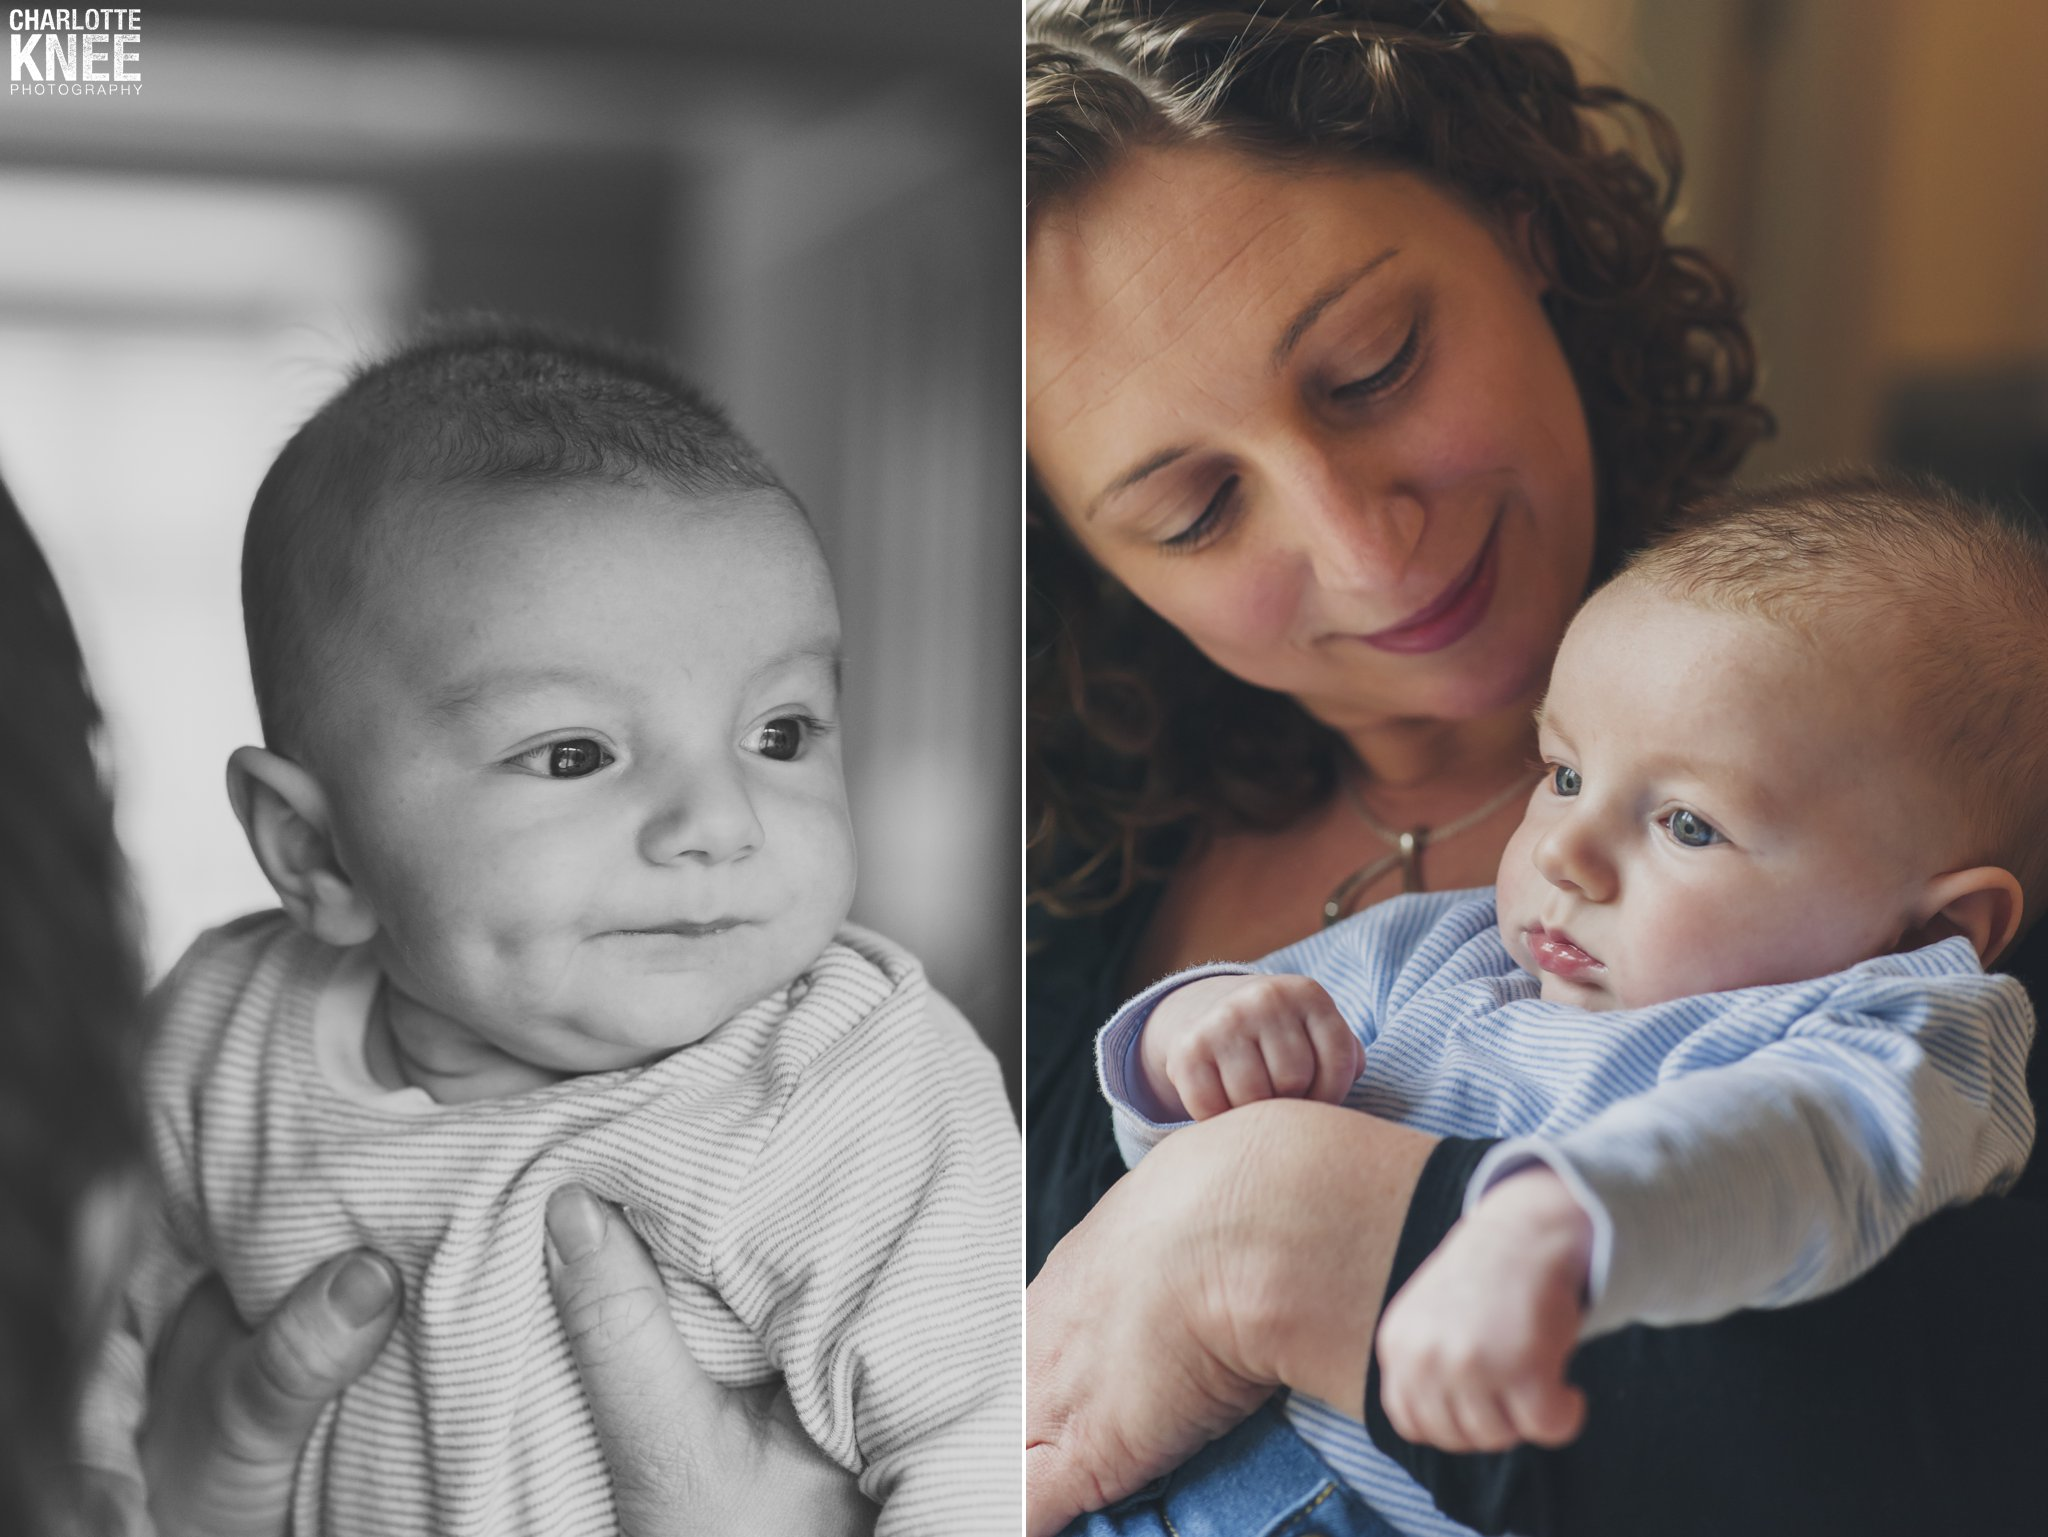 London Newborn Family Lifestyle Portrait Copyright Charlotte Knee Photography_0018.jpg